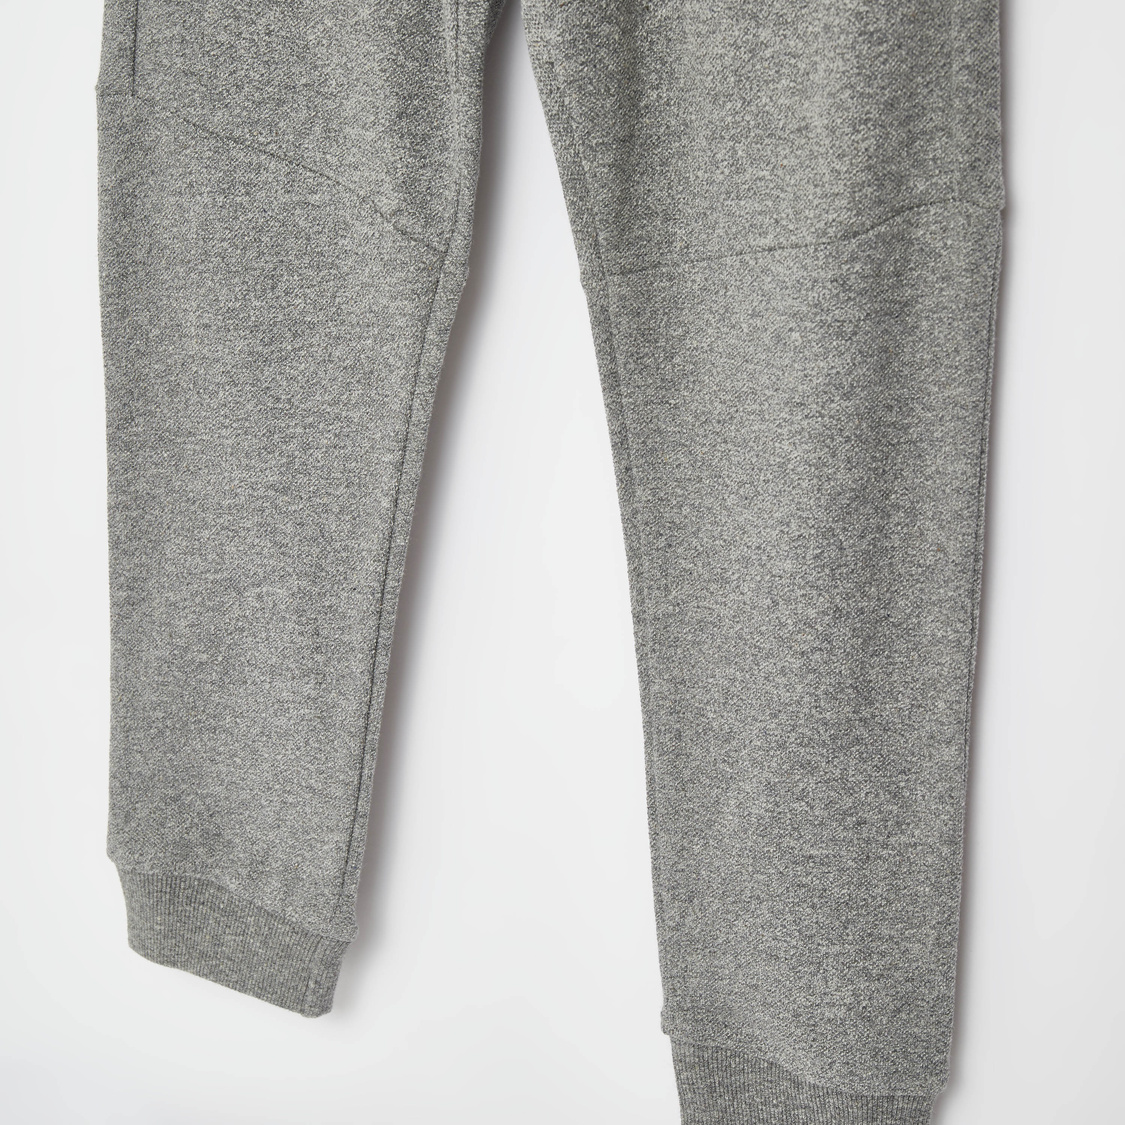 Solid Grindle Pique Jog Pants with Pockets and Drawstring